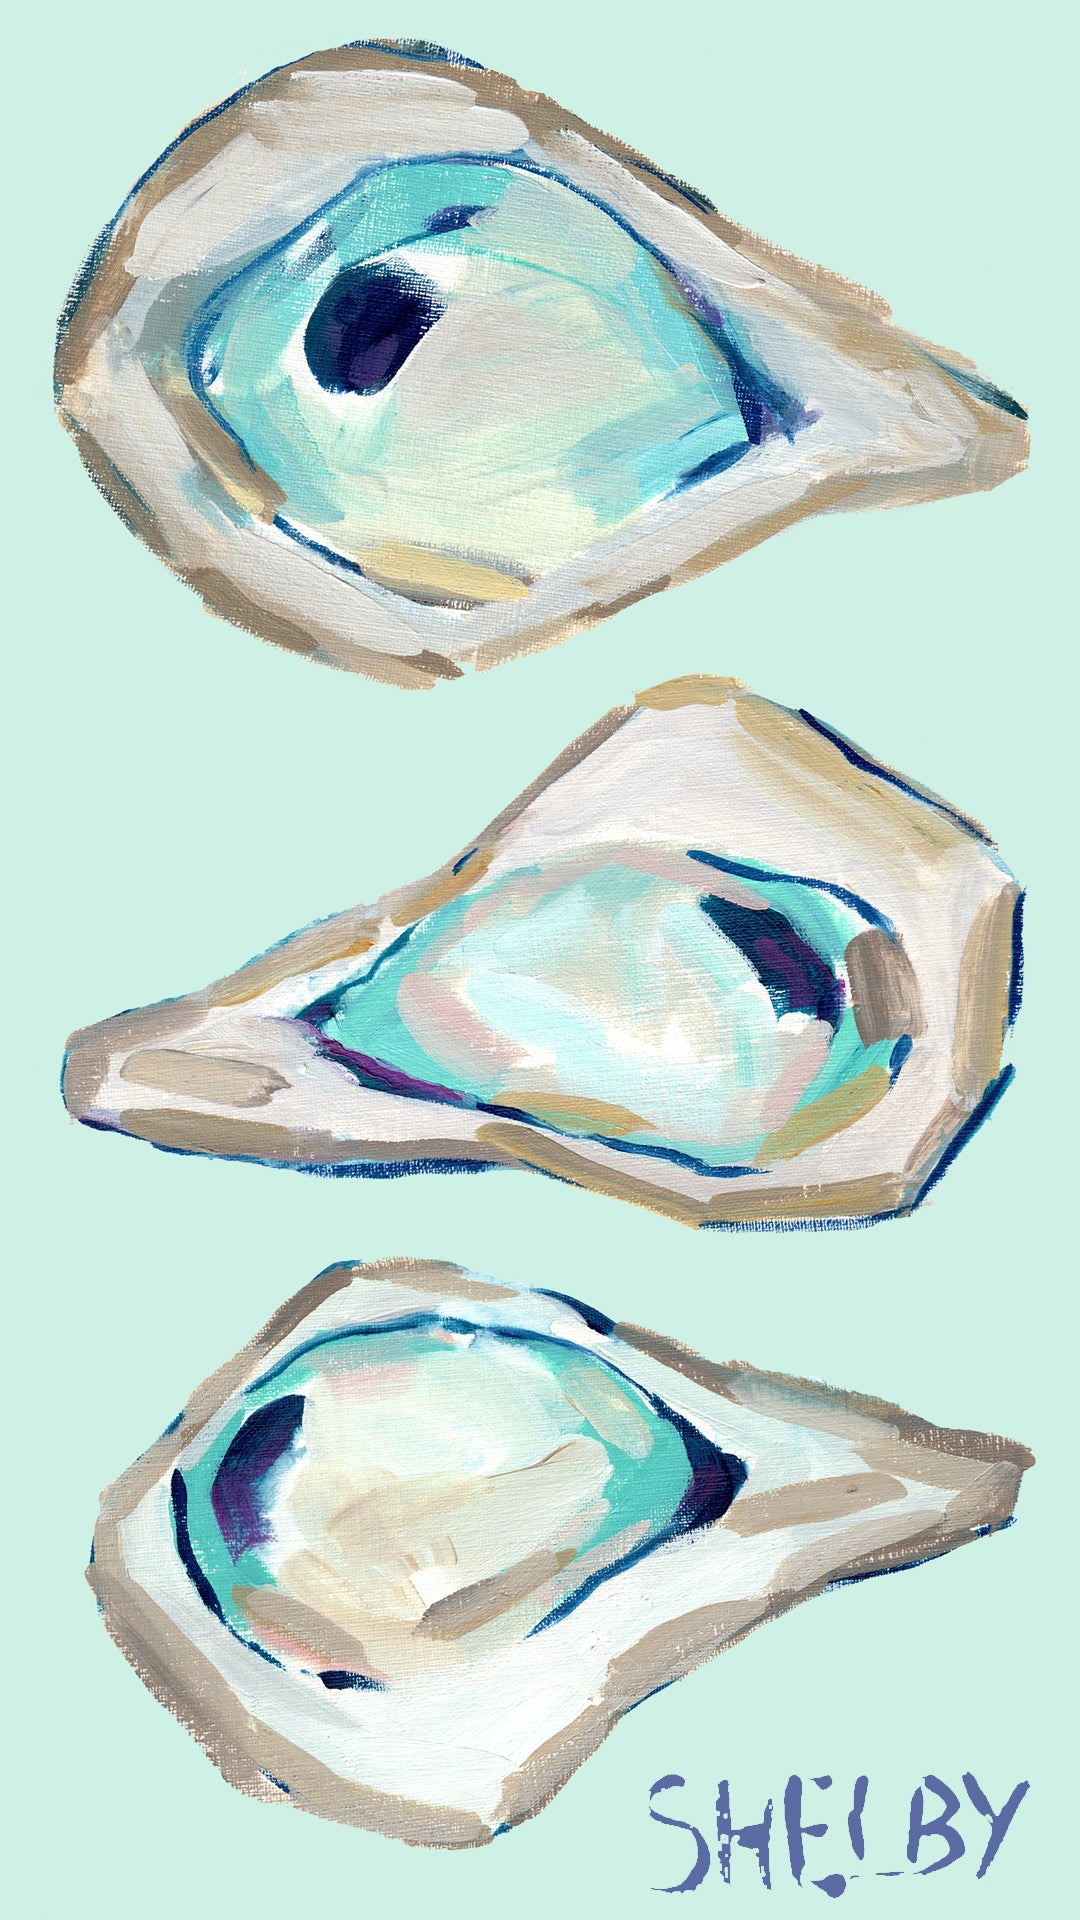 Oyster Wallpaper by Shelby Dillon